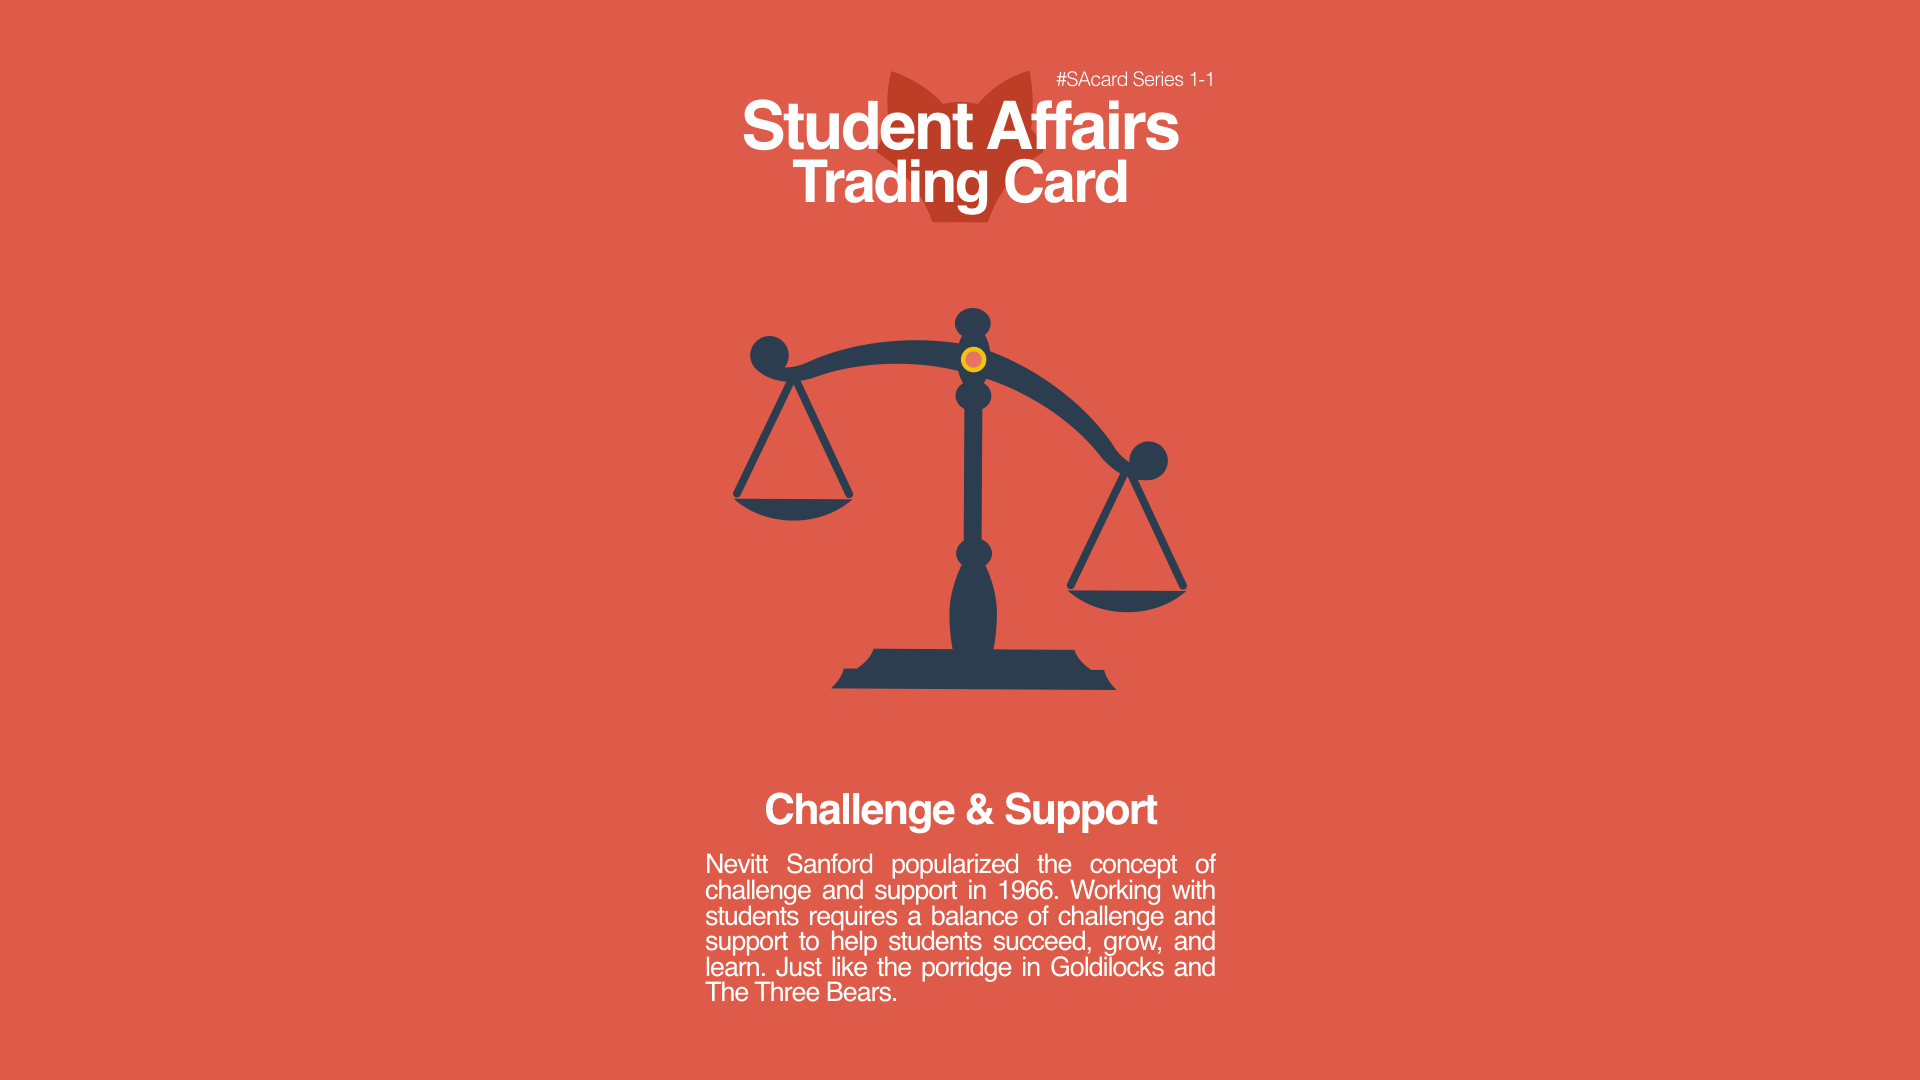 Student Affairs Trading Card 1-1: Challenge and Support